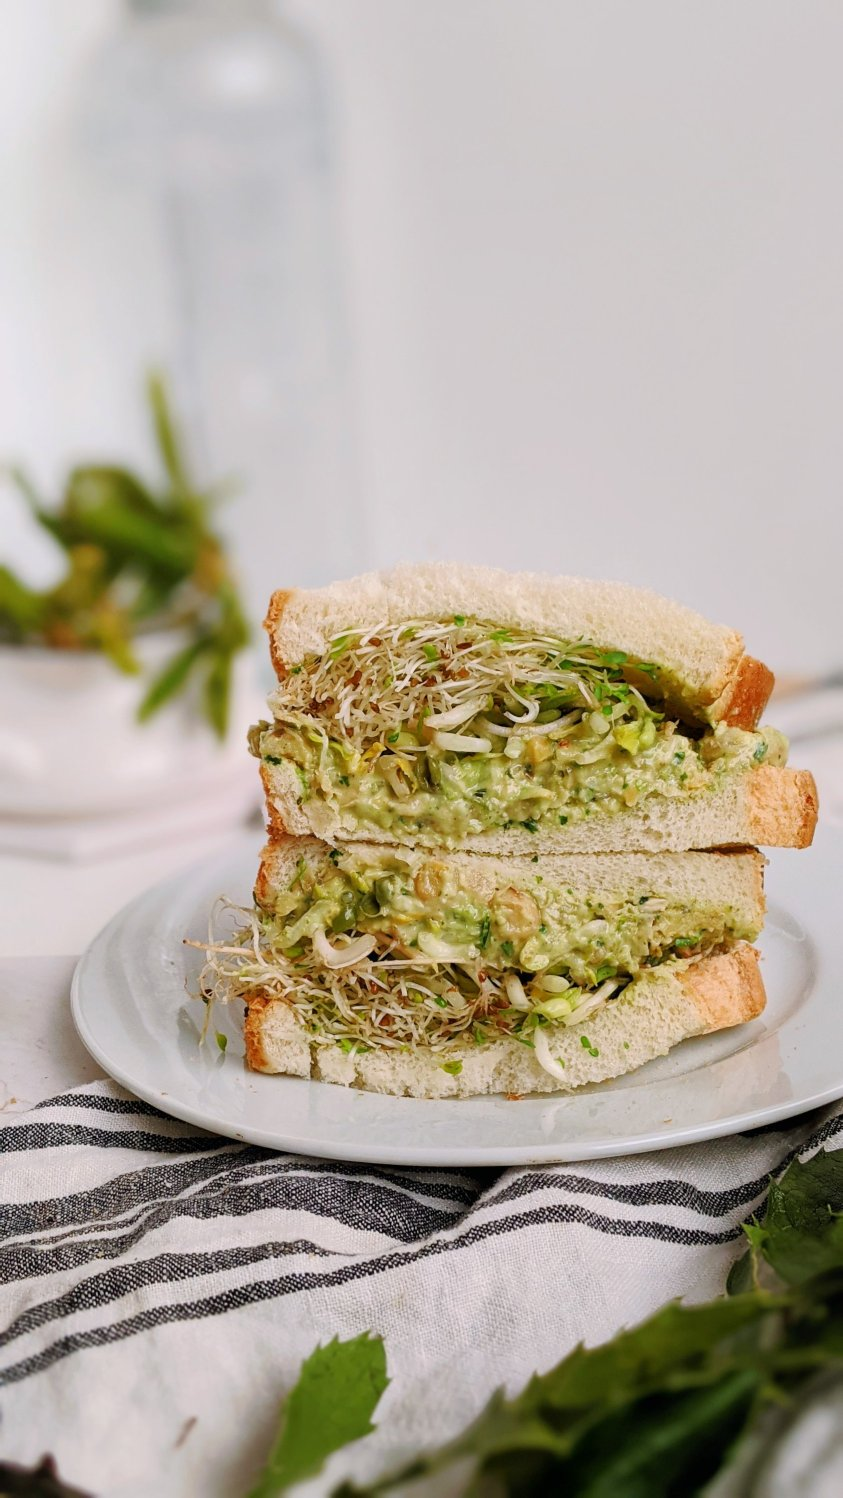 dairy free pesto sandwich recipe vegan gluten free no cheese pesto sandwich with chickpea salad healthy basil pesto garbanzo bean salad sandwiches healthy plant based gluten free picnic recipes for summer beach party